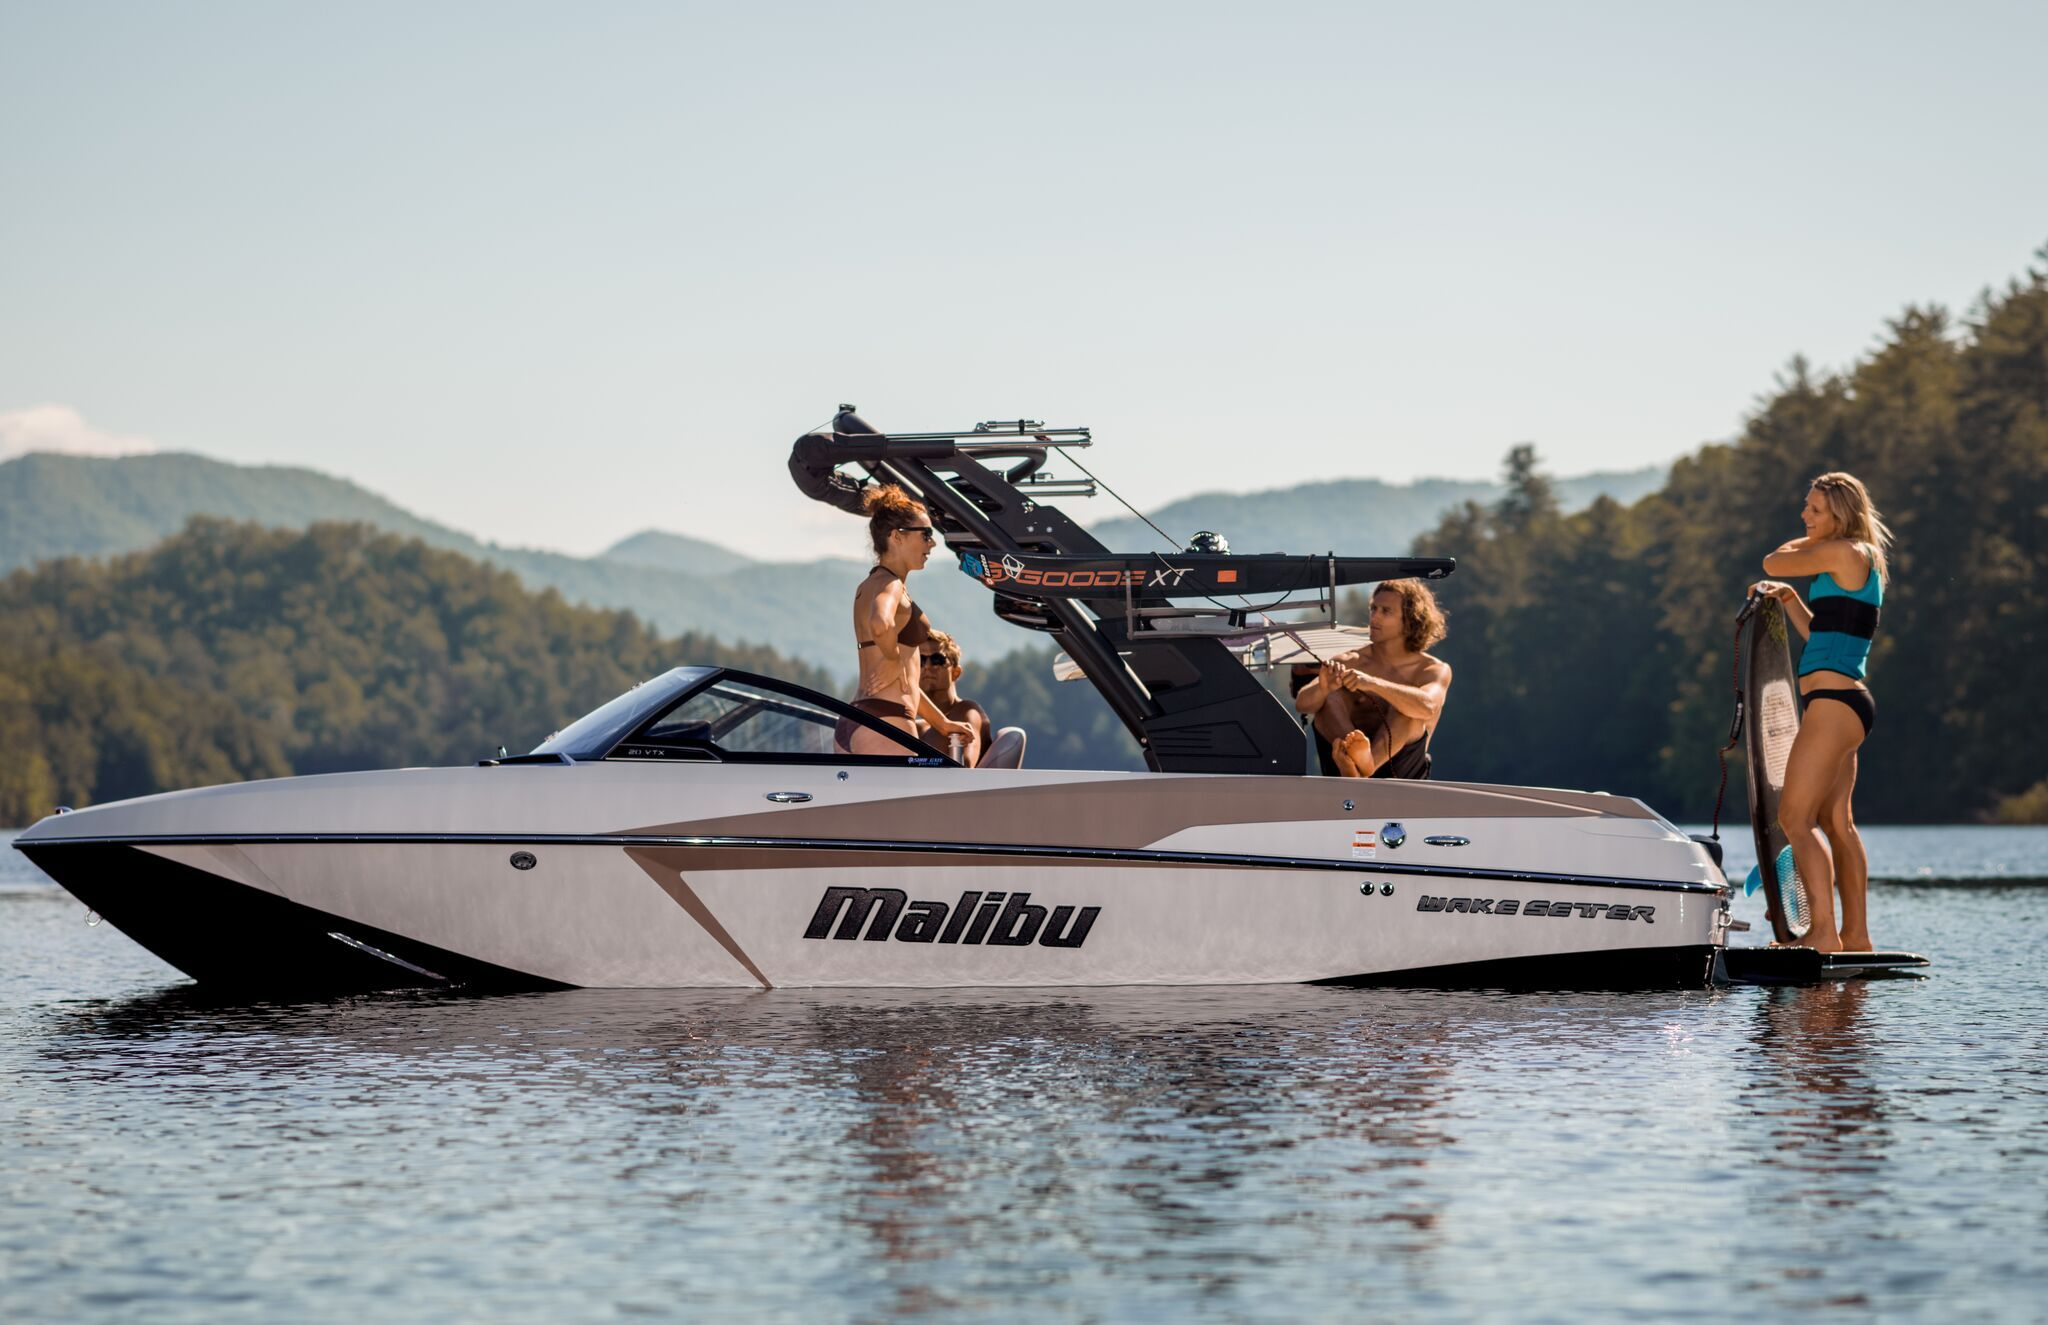 The Malibu 20 Vtx Is The Leading Crossover Boat In The Industry With A Diamond Multisport Hull And Integrated Surf Platform Boat Malibu Boats Wakeboard Boats